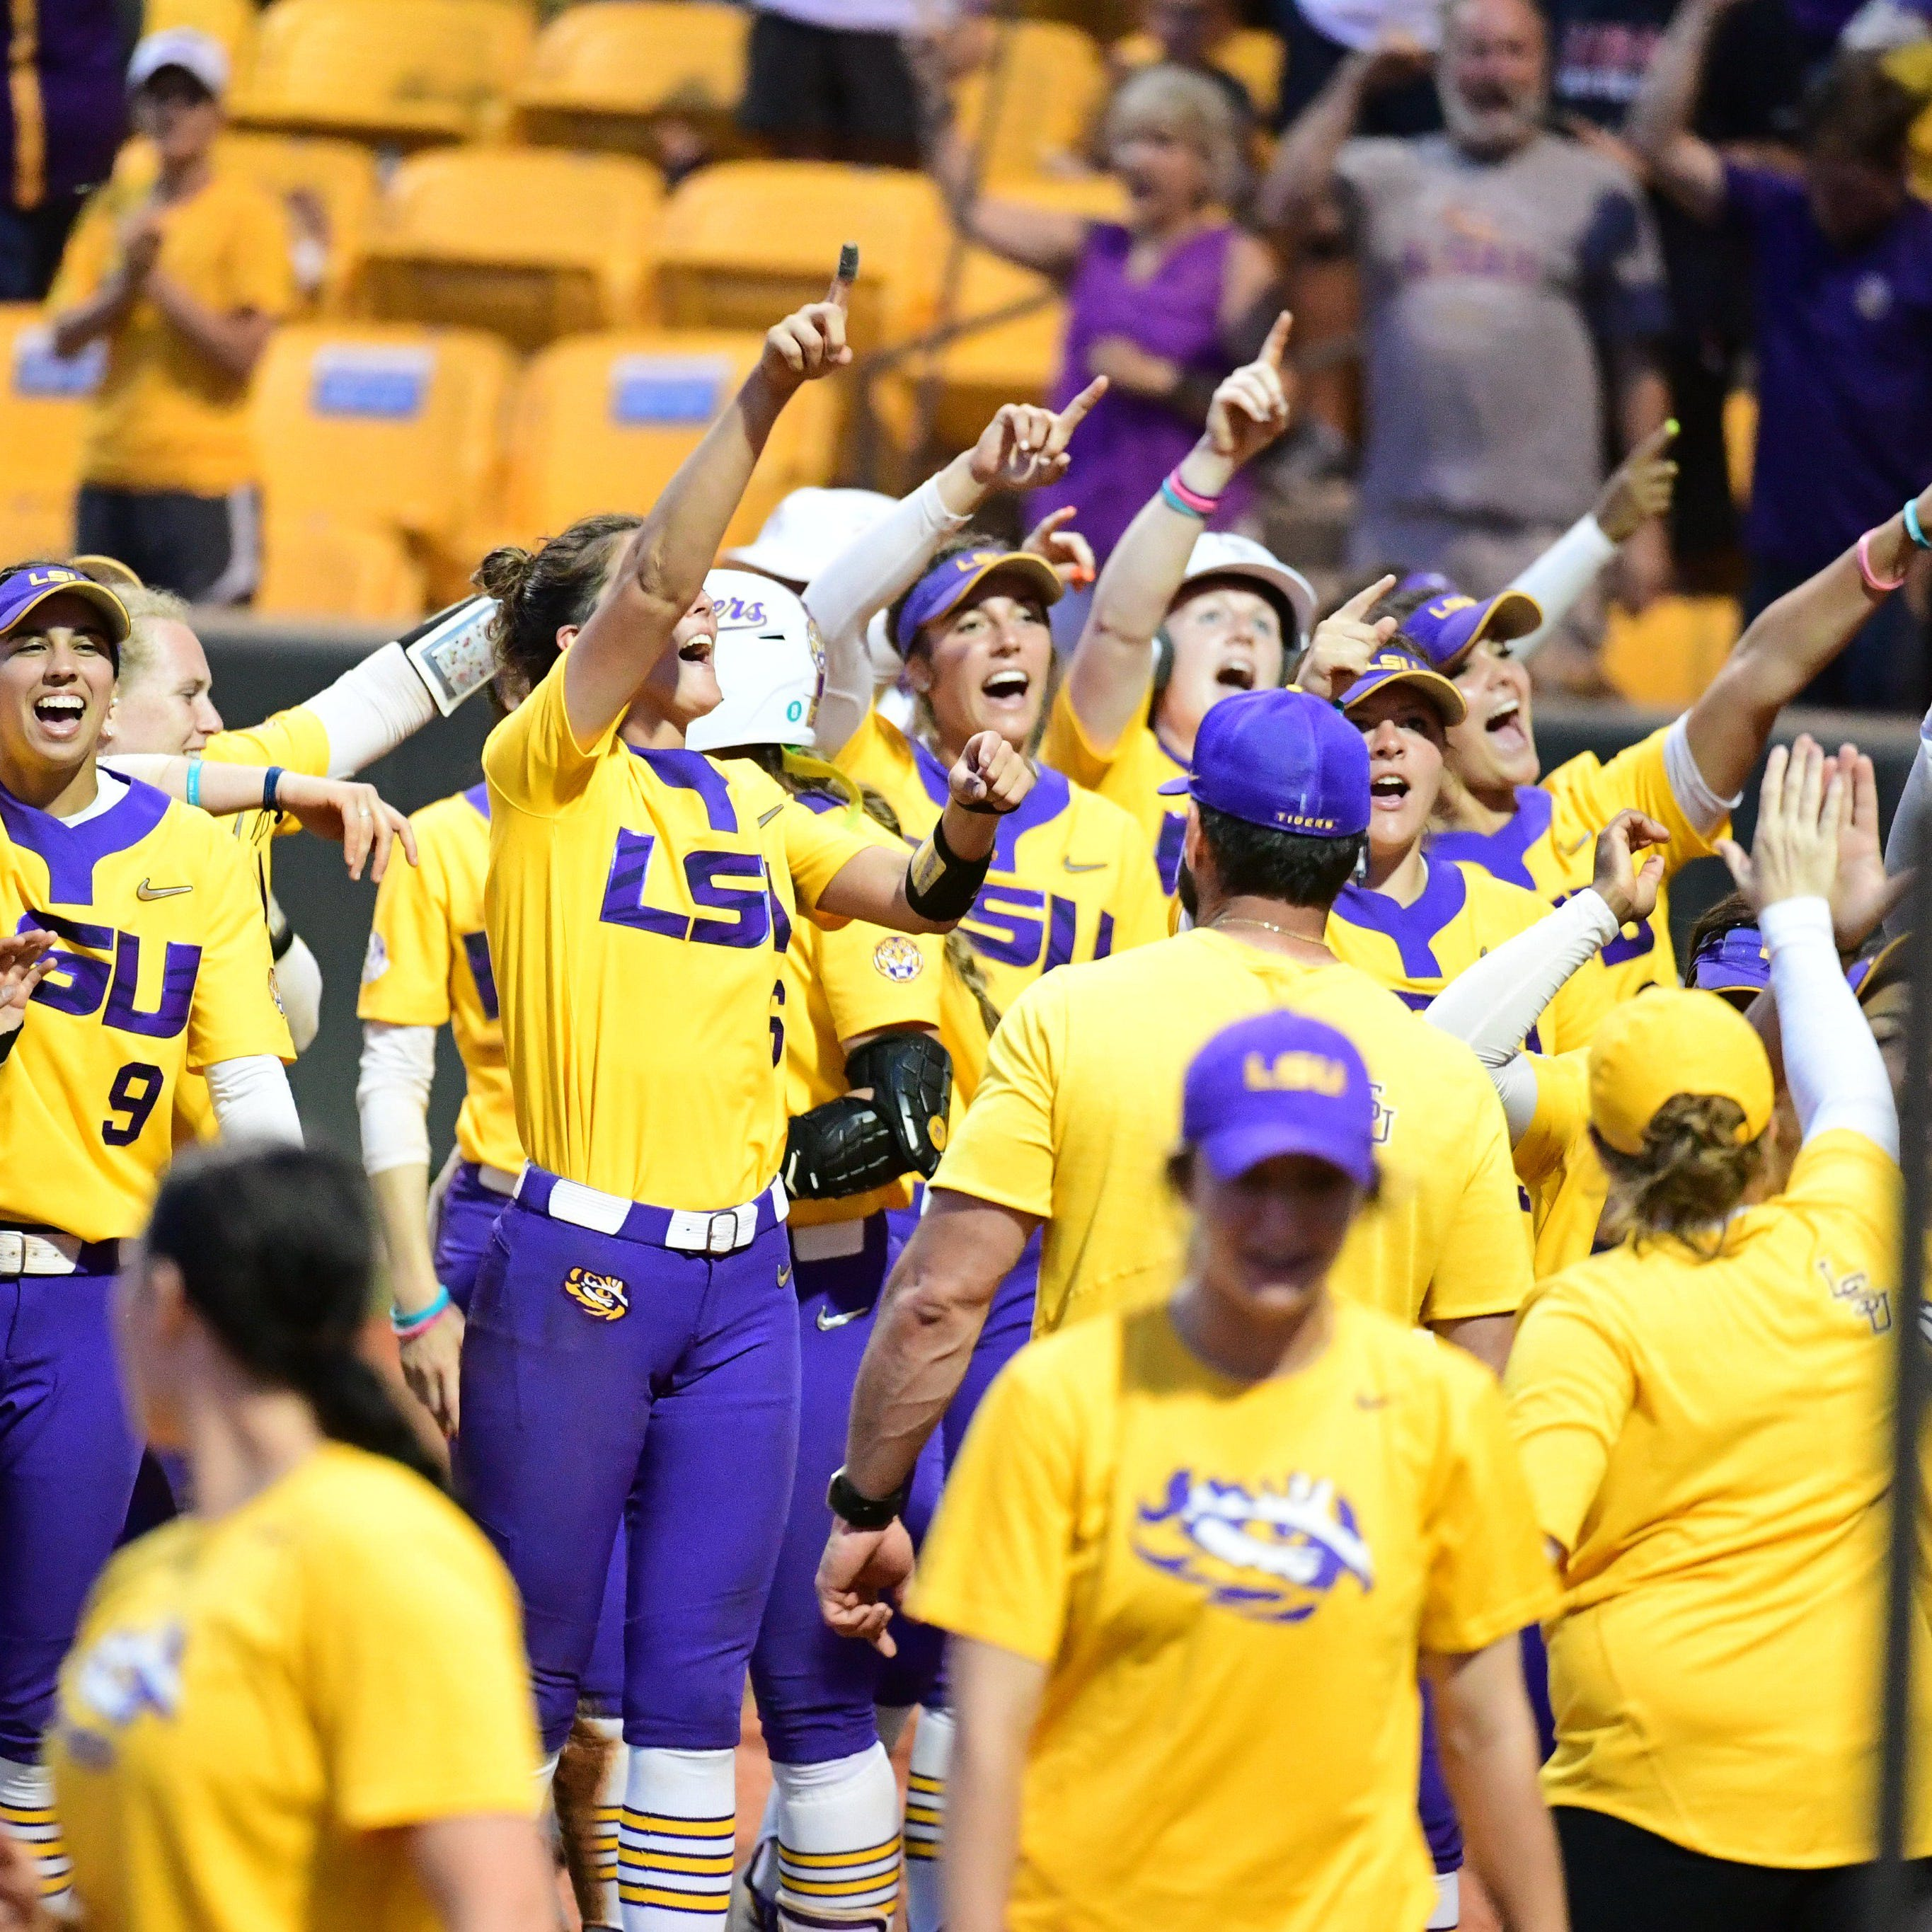 NCAA Softball Tournament 2019: How to watch, stream LSU vs. Minnestoa super regional